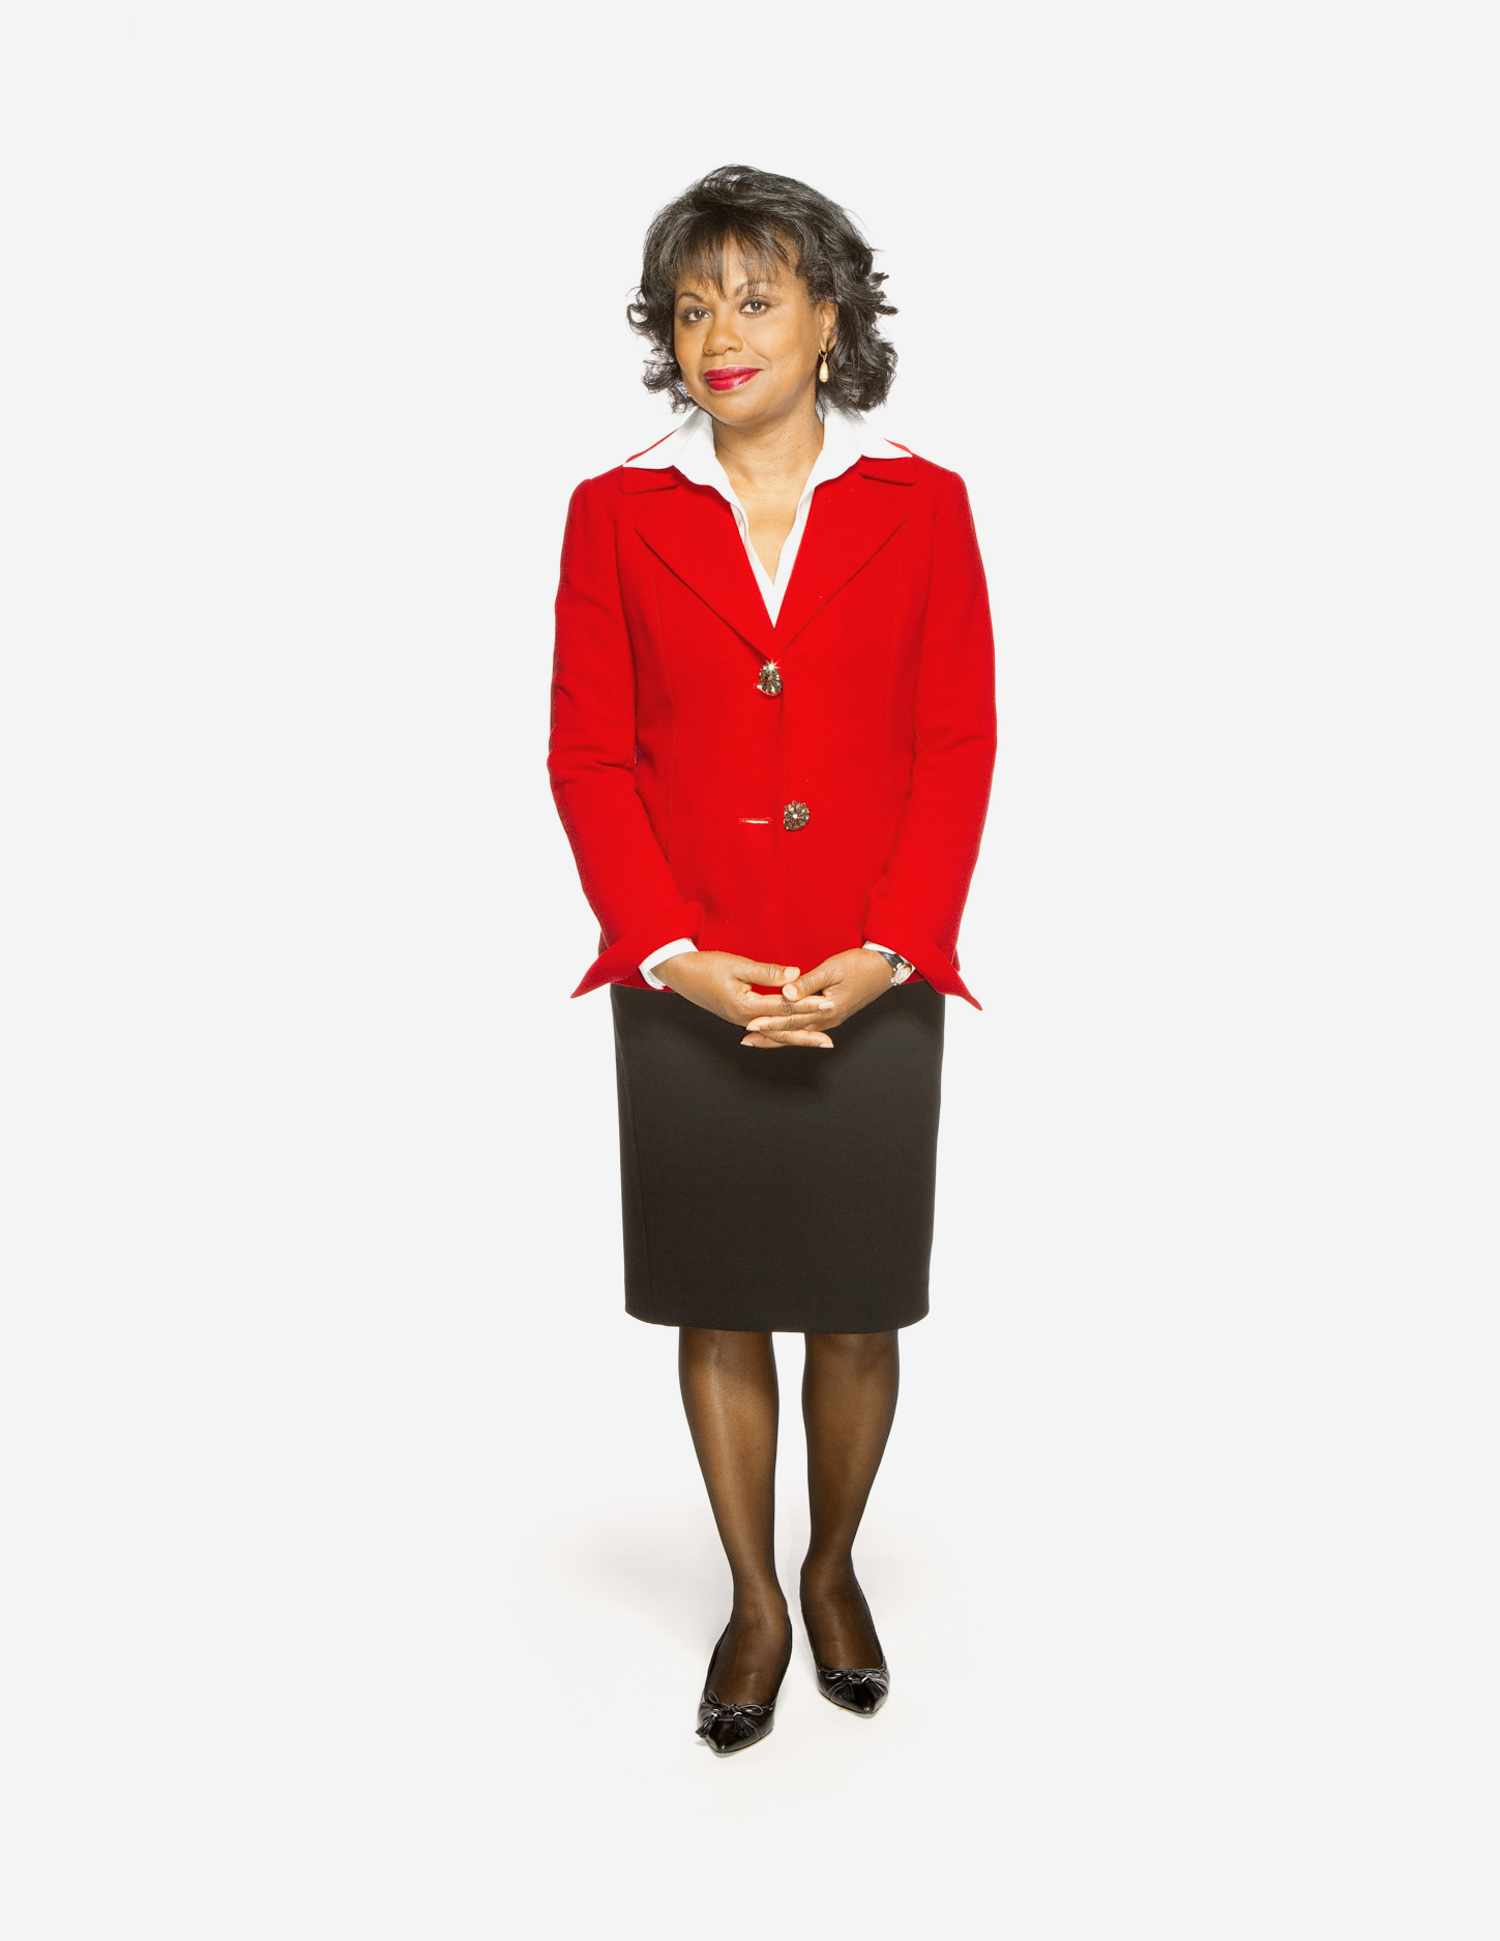 Anita Hill photographed by Adam DeTour